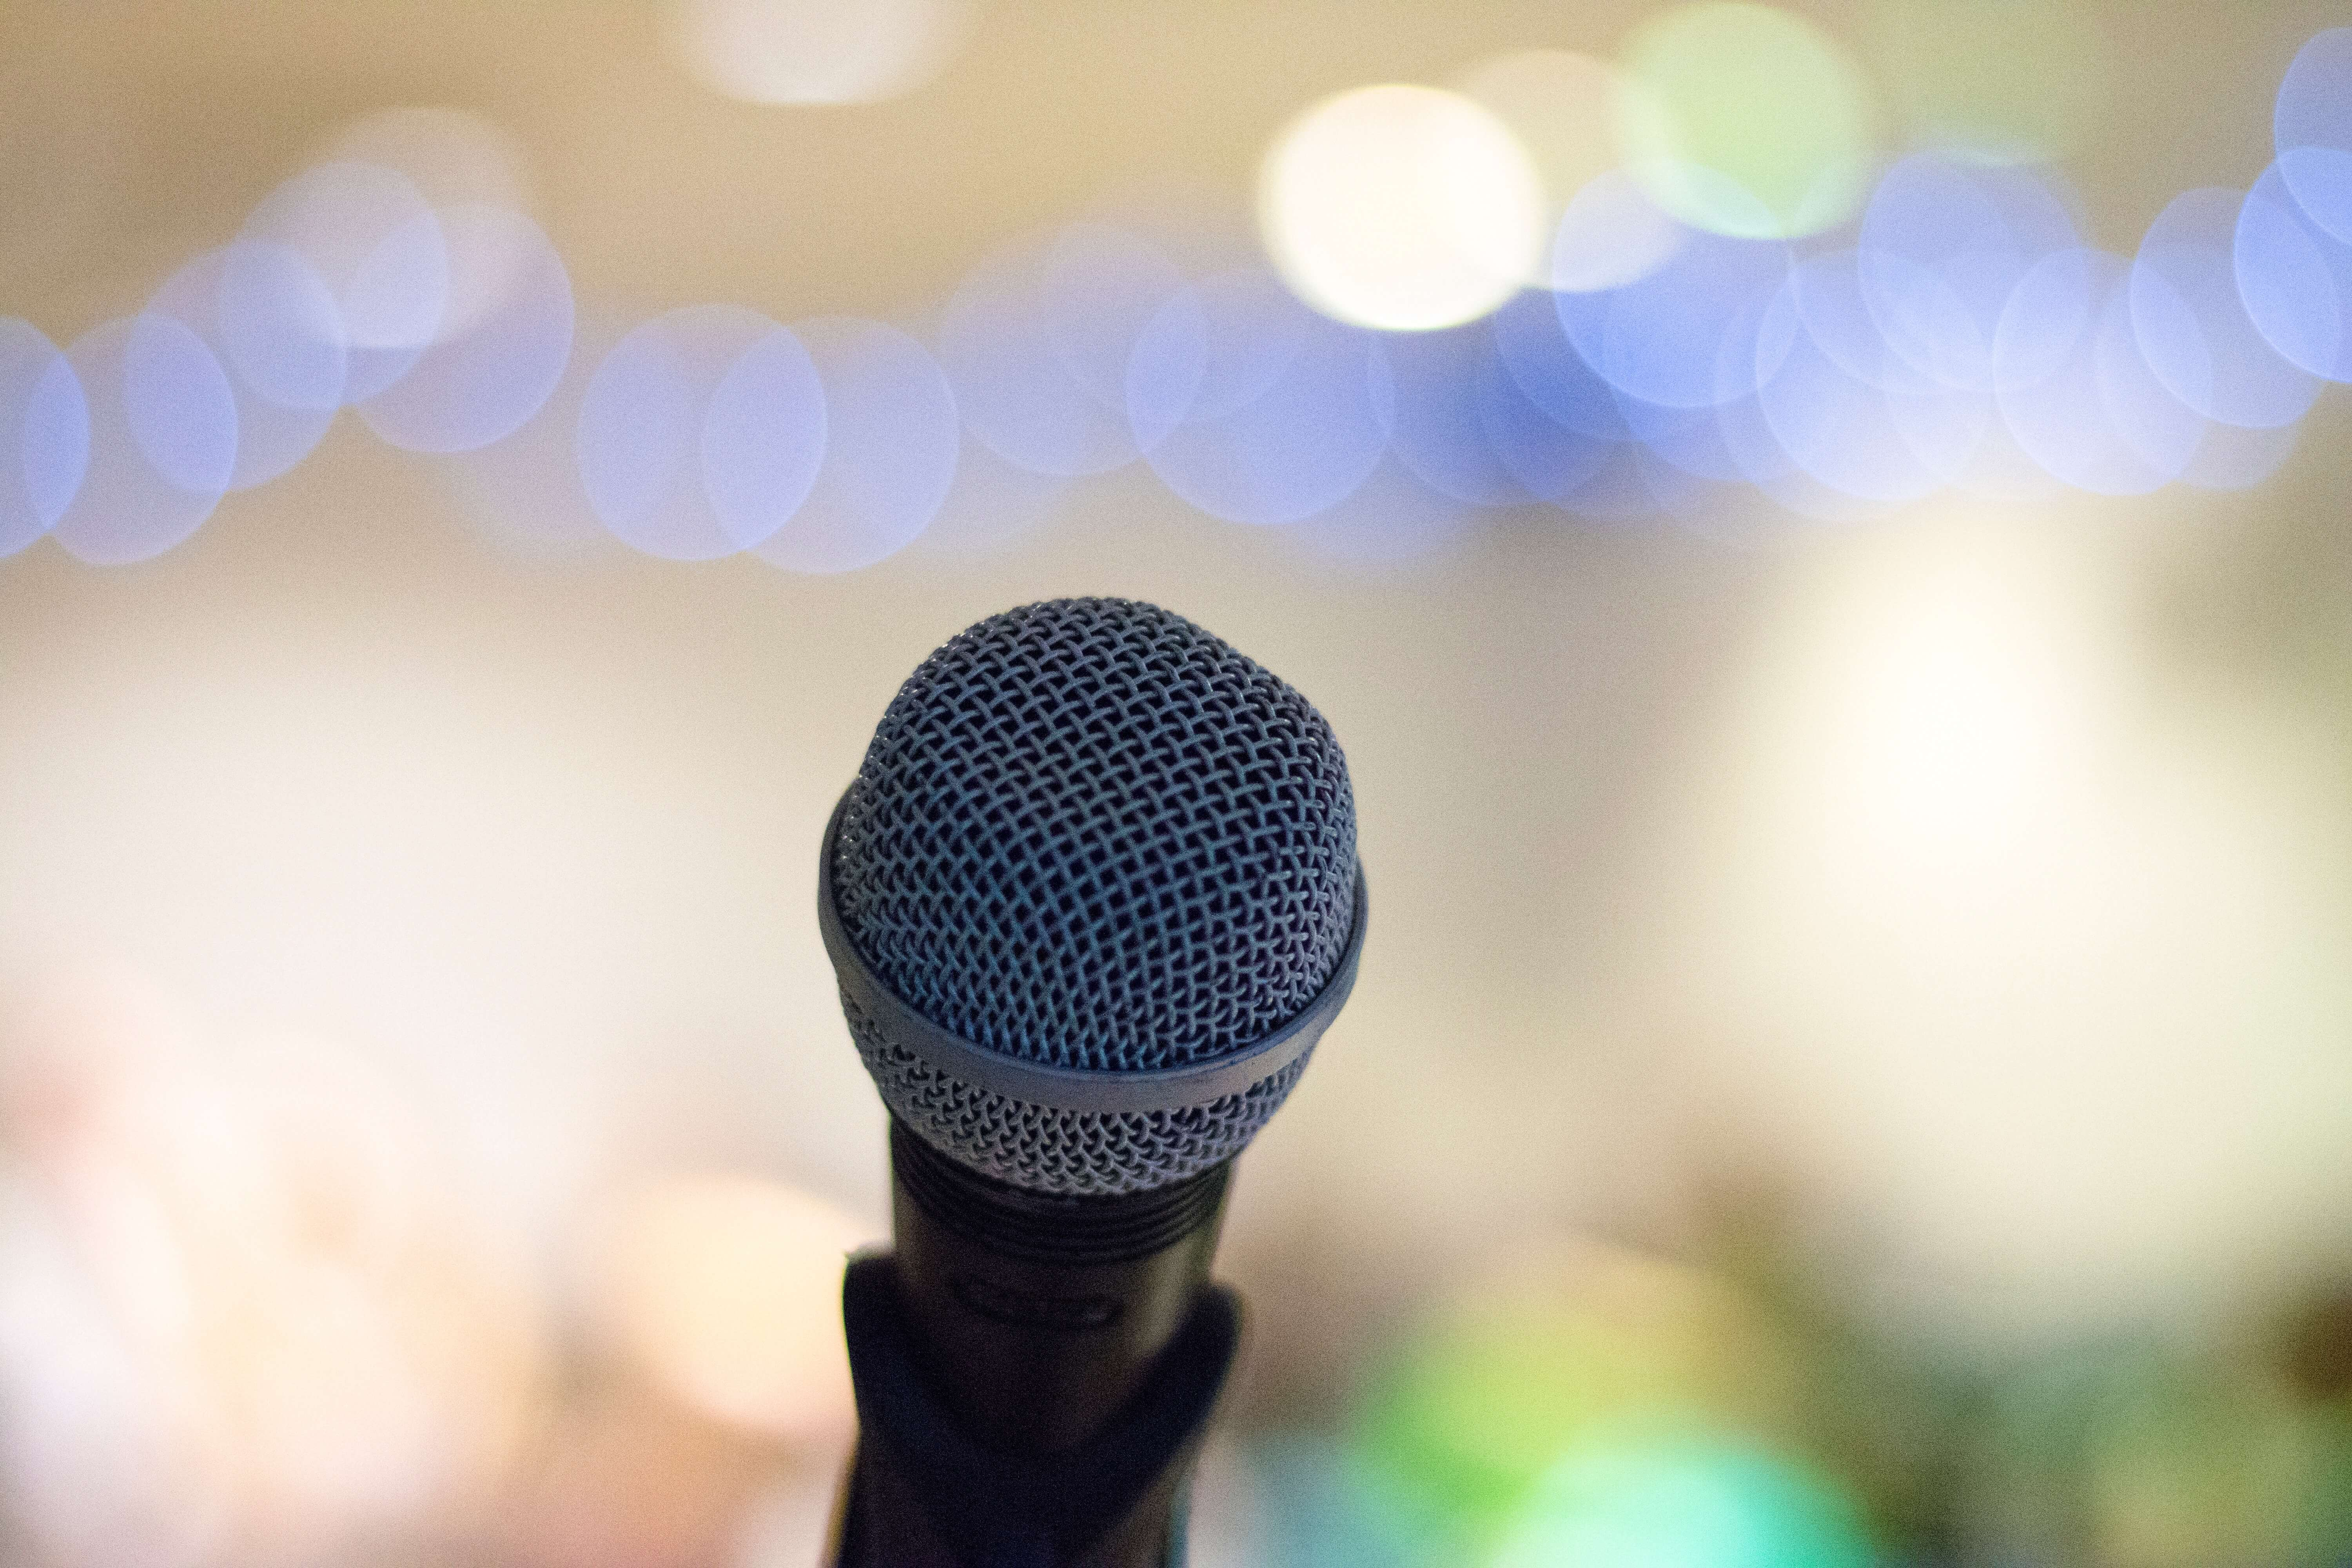 How I Overcame My Fear of Public Speaking